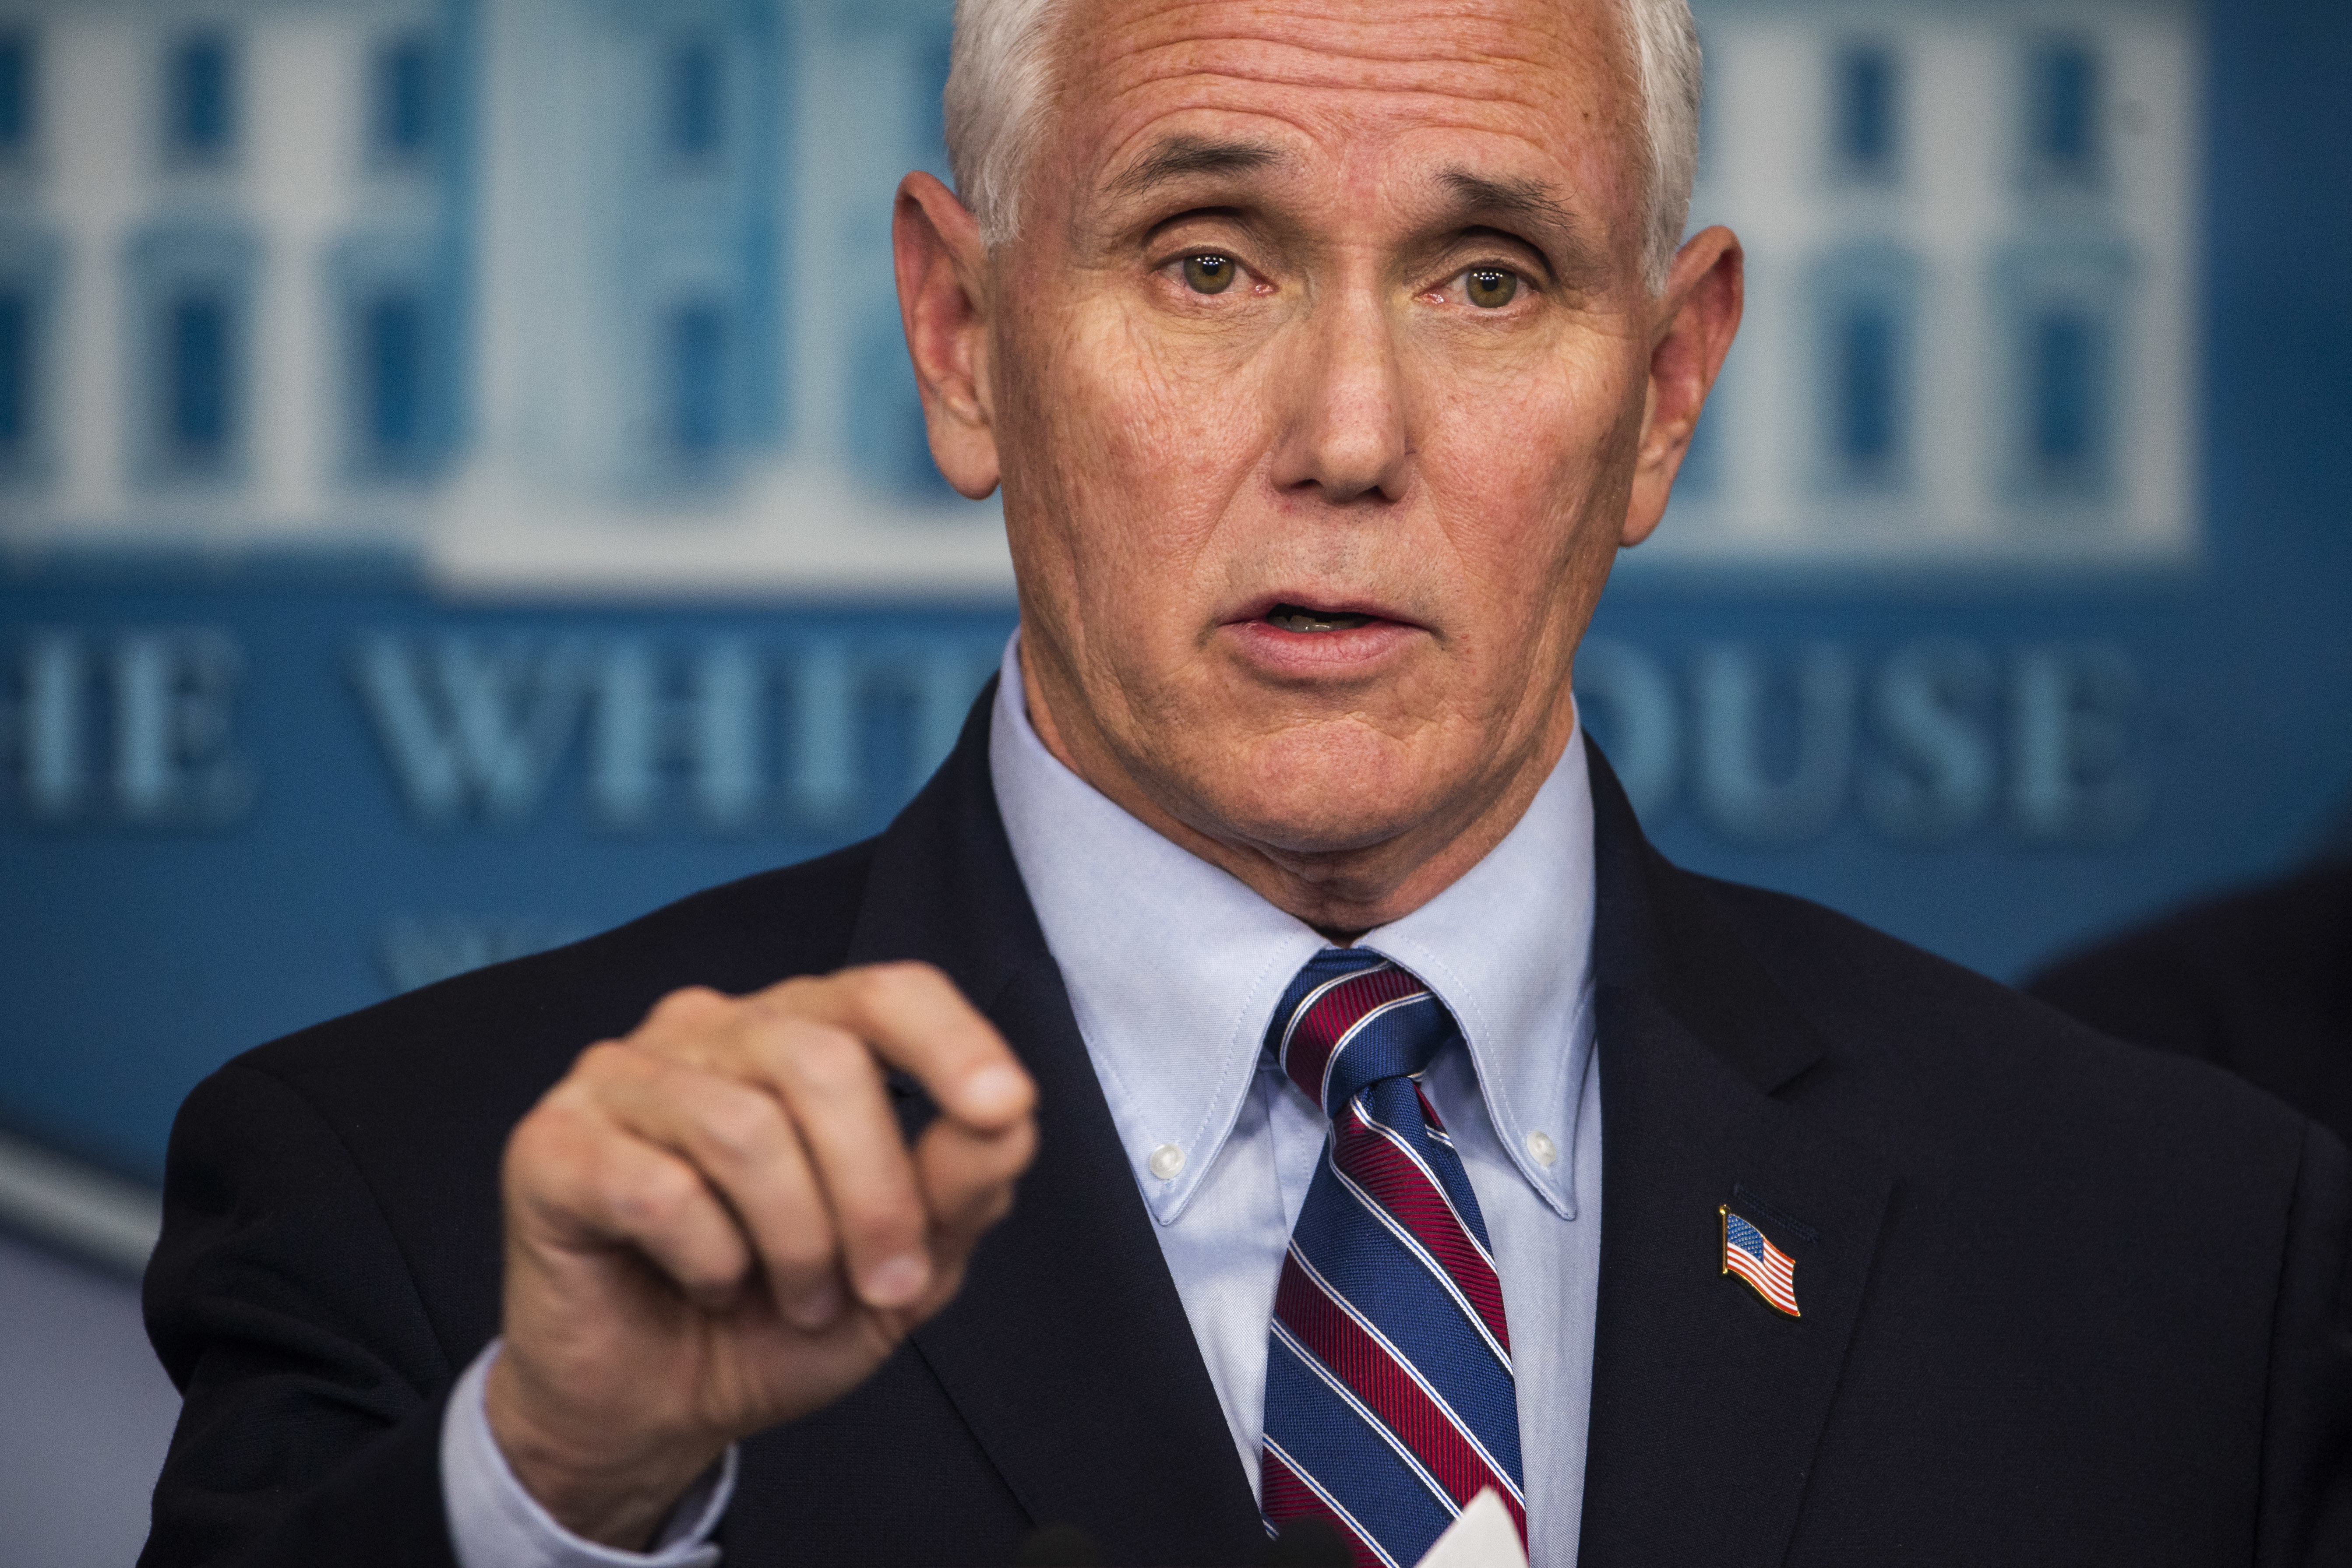 Mike Pence at White House press conference